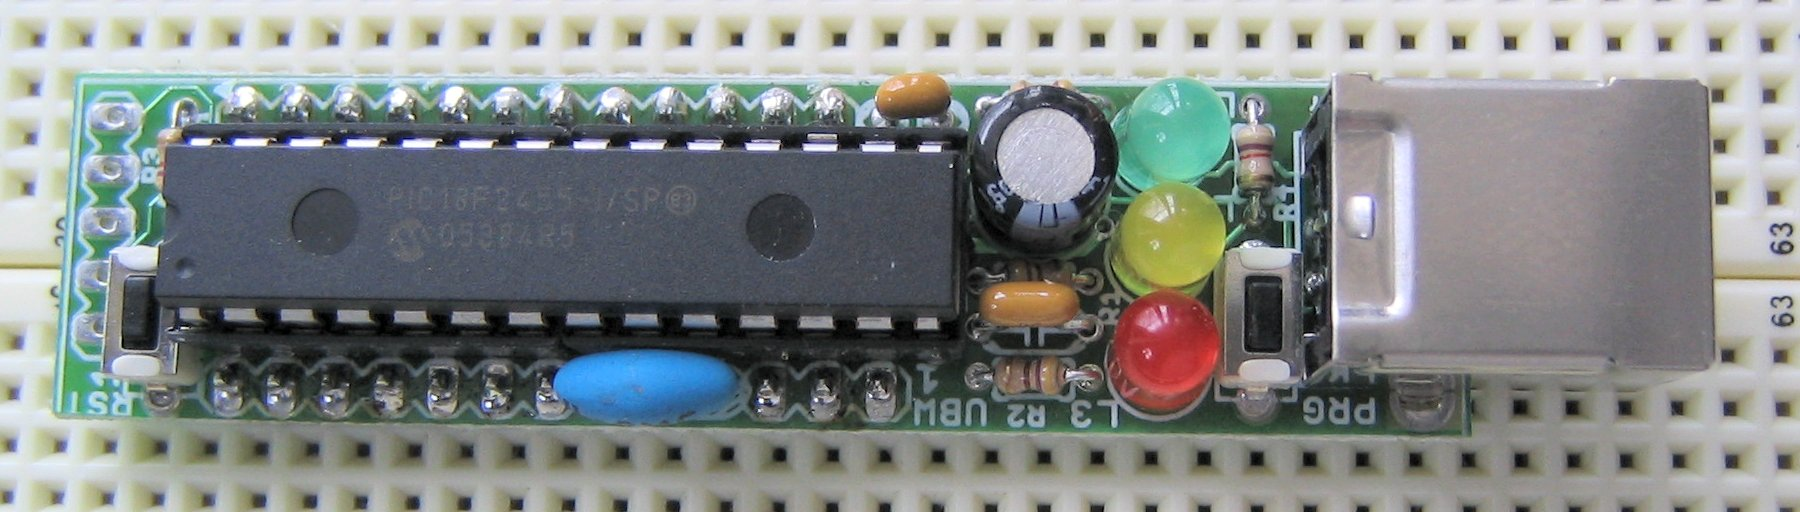 Ubw Usb Bit Whacker Project Lpt To Wiring Diagram Here